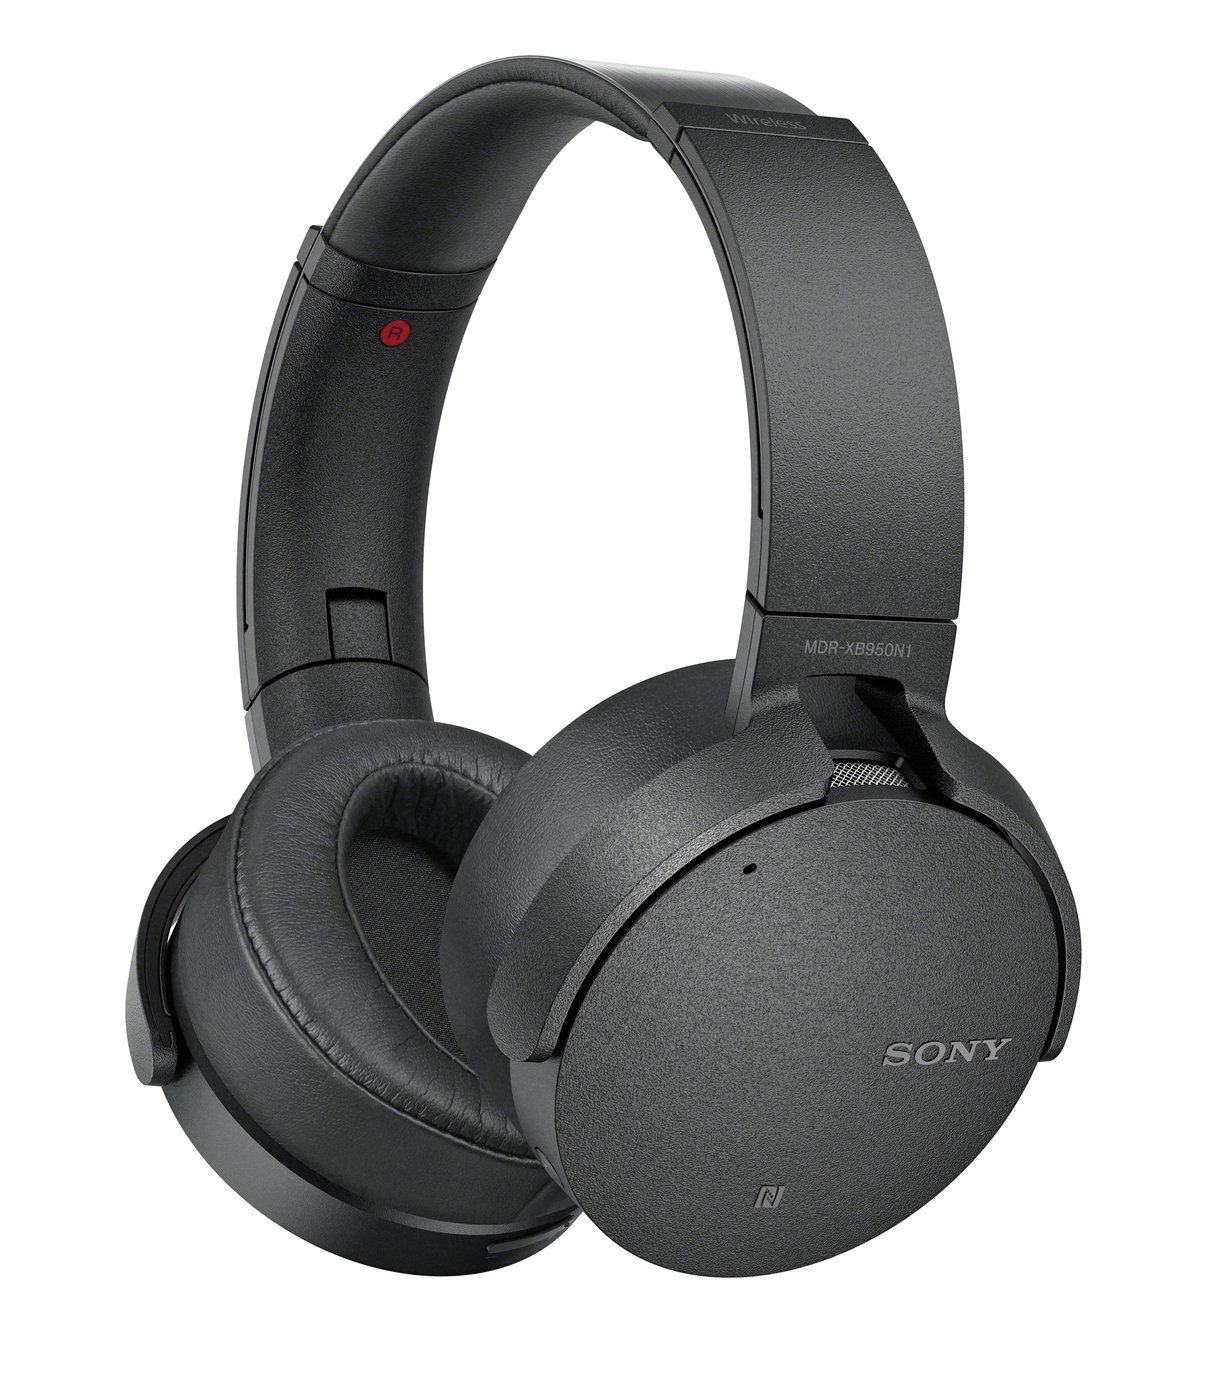 Sony MDR-XB950N1 Wireless On-Ear Headphones - Black